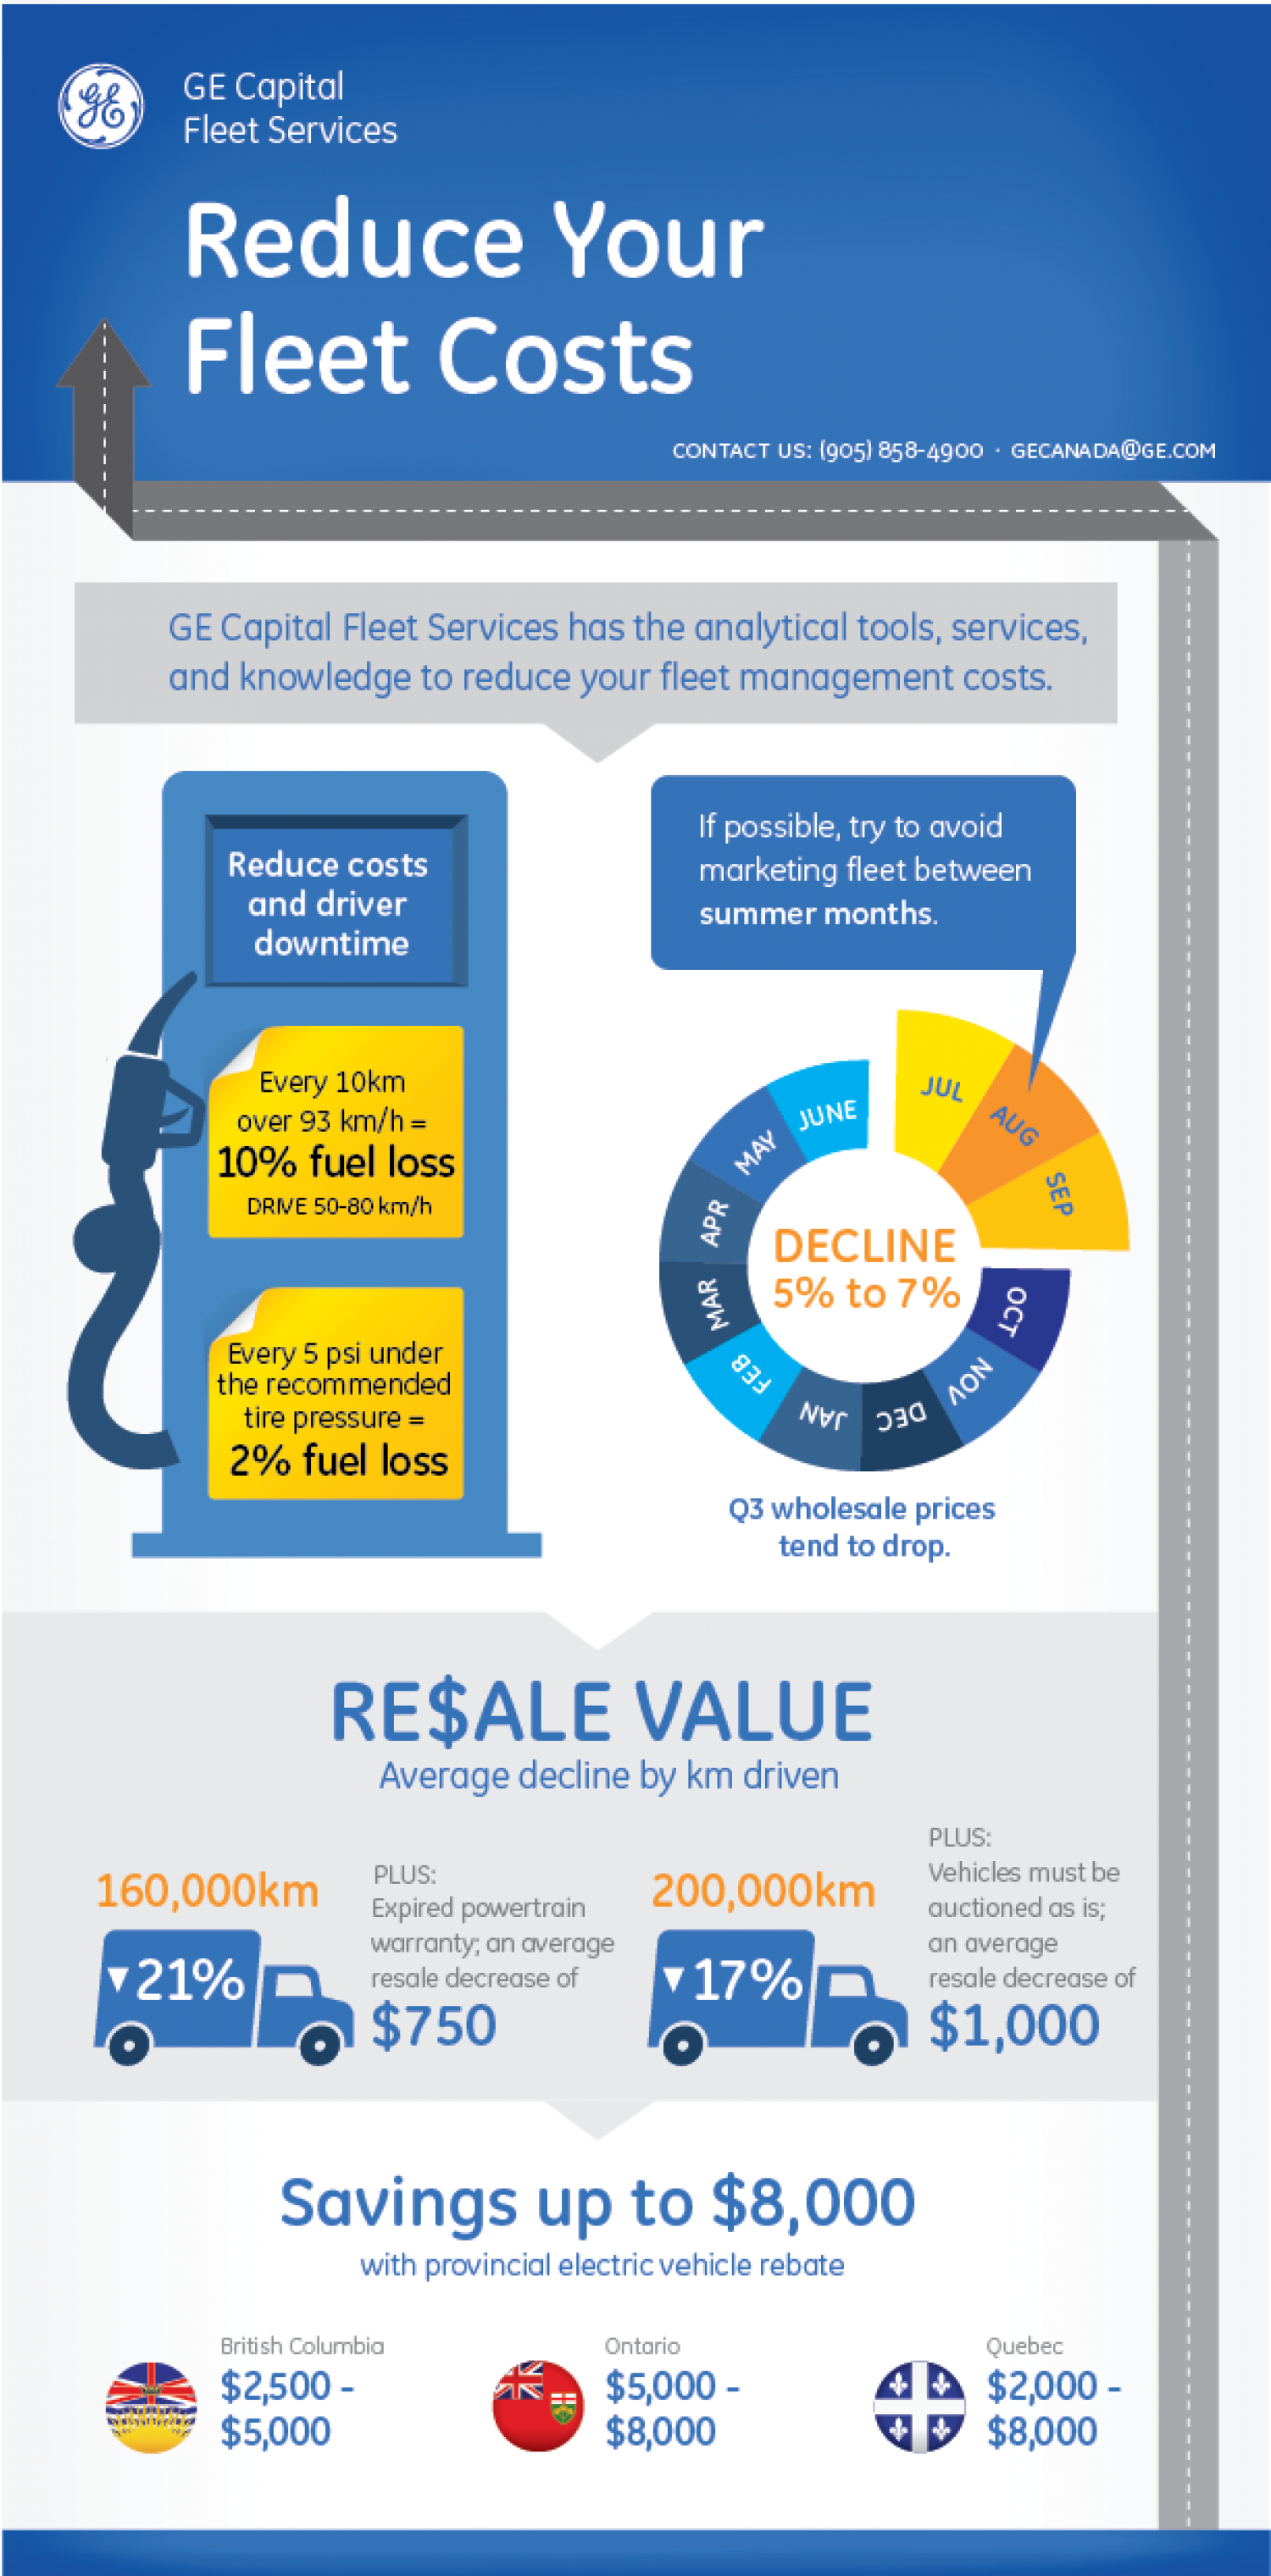 Reduce Your Fleet Costs Infographic